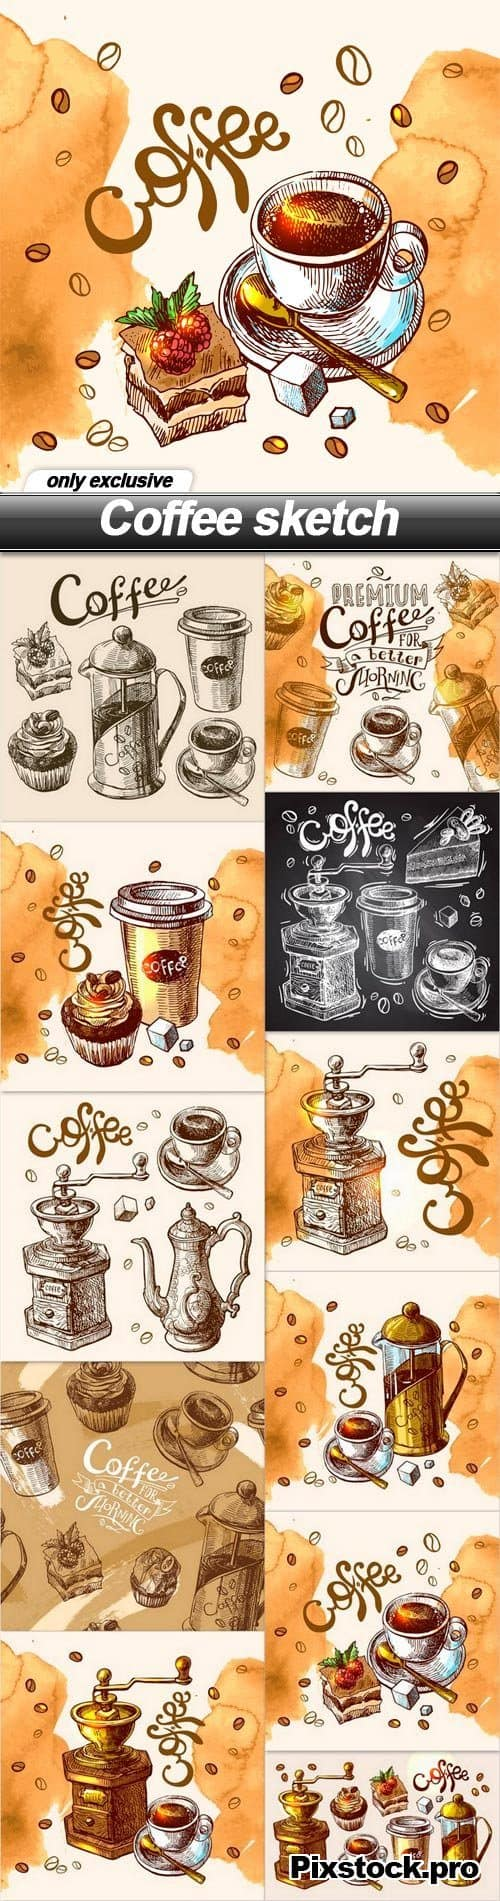 Coffee sketch – 11 EPS